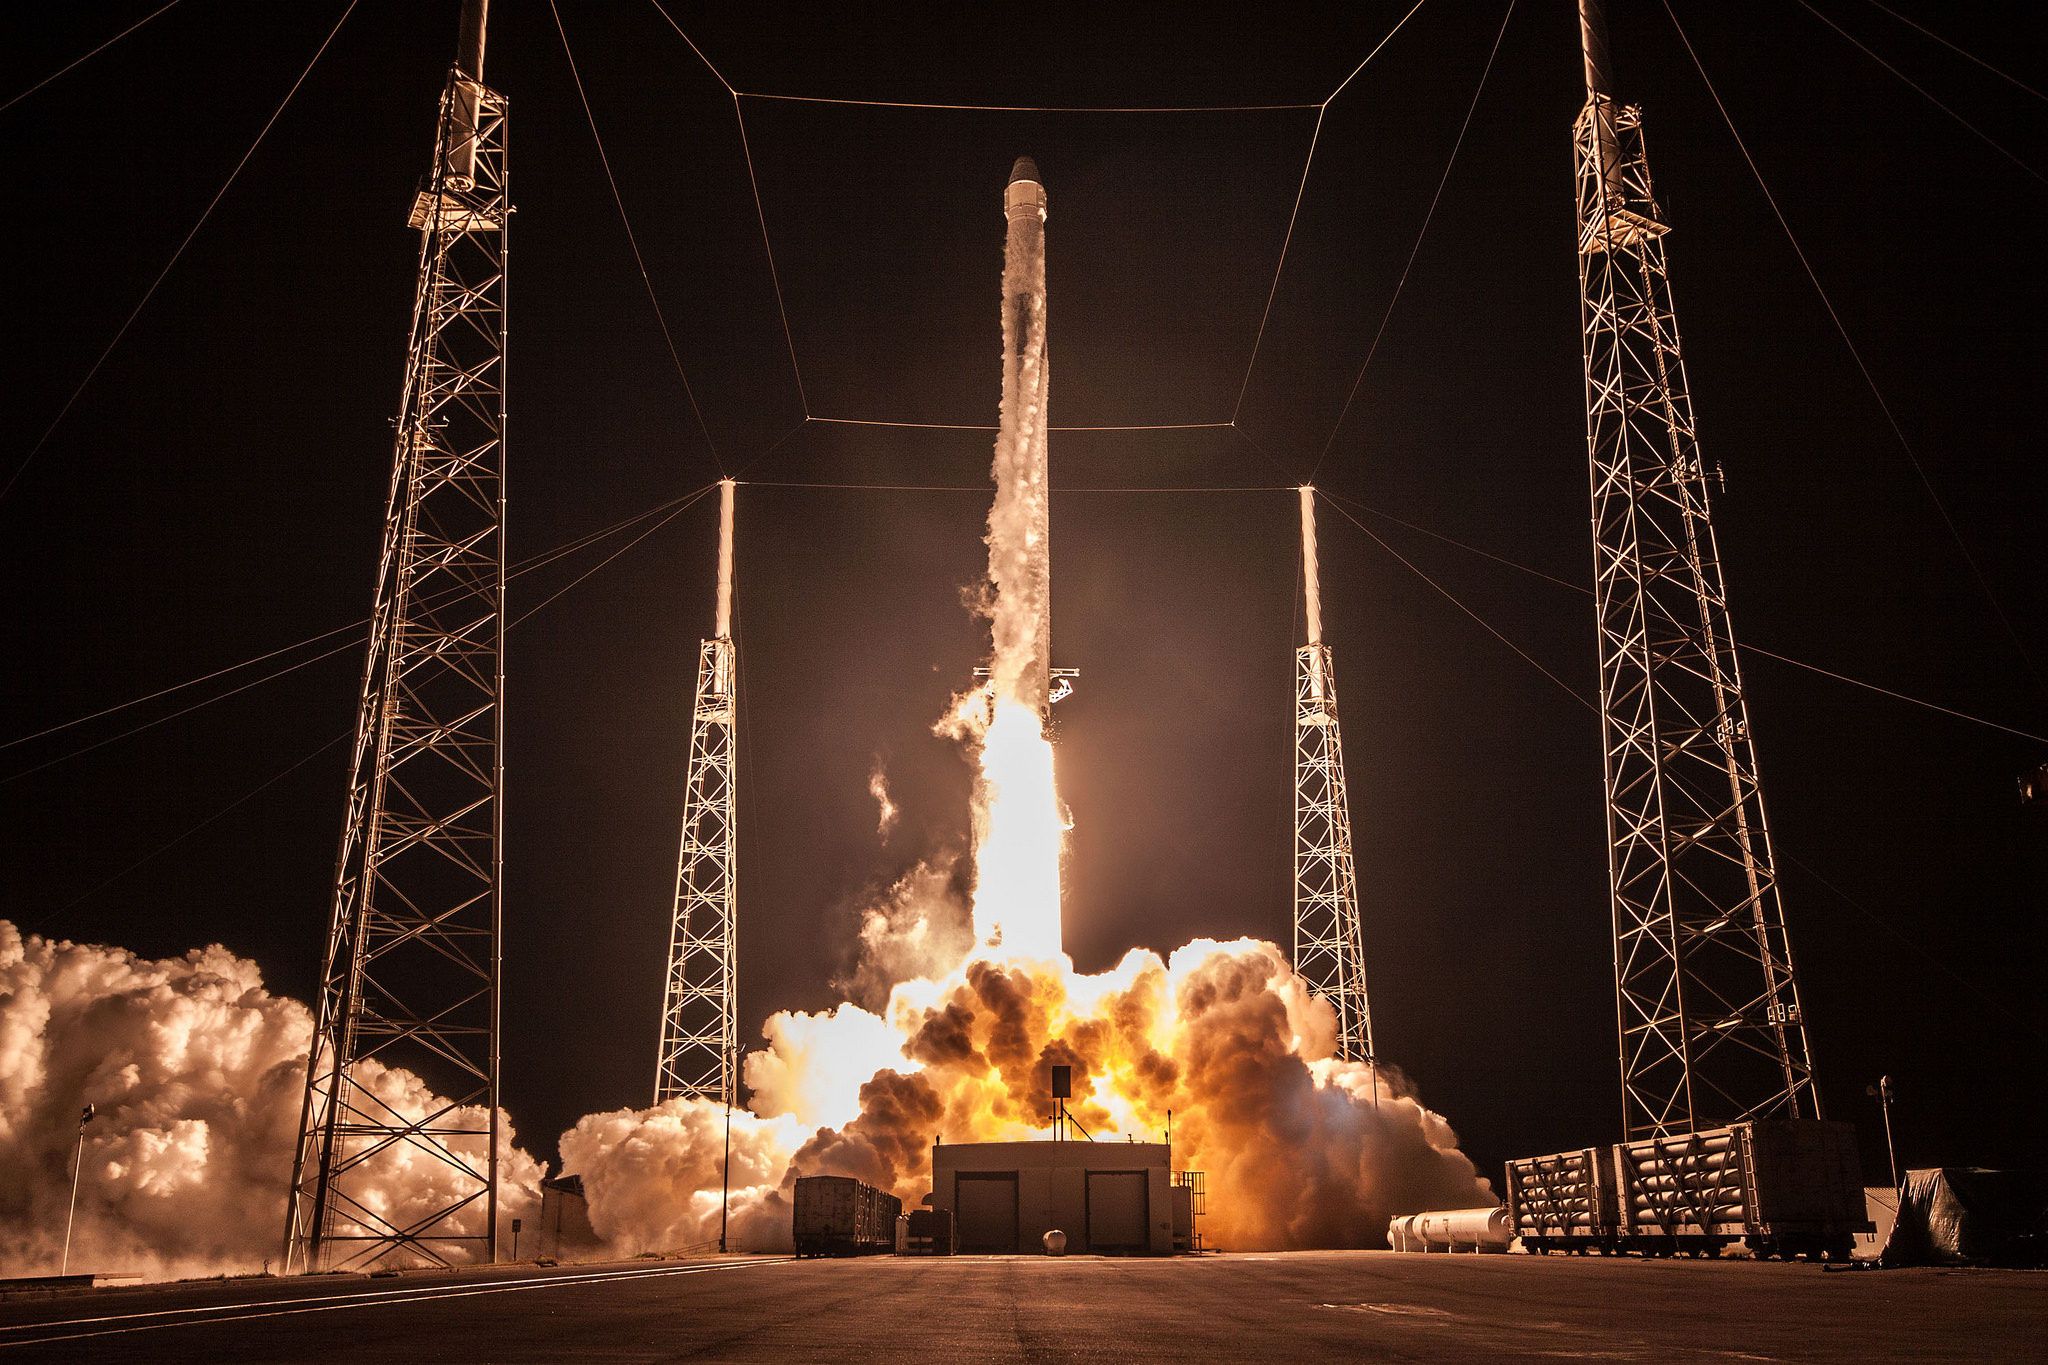 SpaceX's Next Space Station Cargo Launch Delayed to April 30